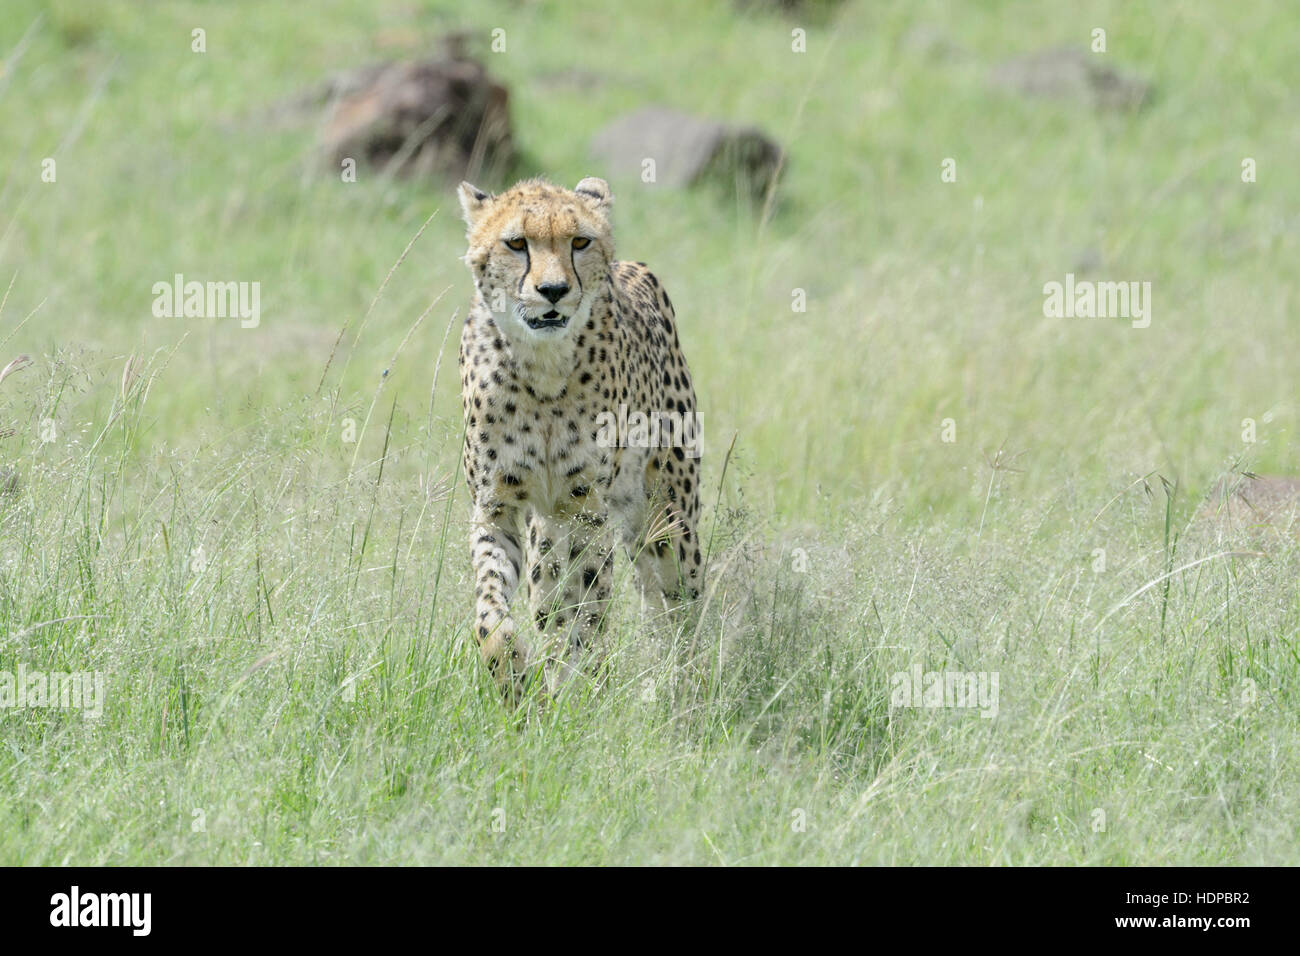 Cheetah (Acinonix jubatus) marche sur la savane, Maasai Mara National Reserve, Kenya Photo Stock